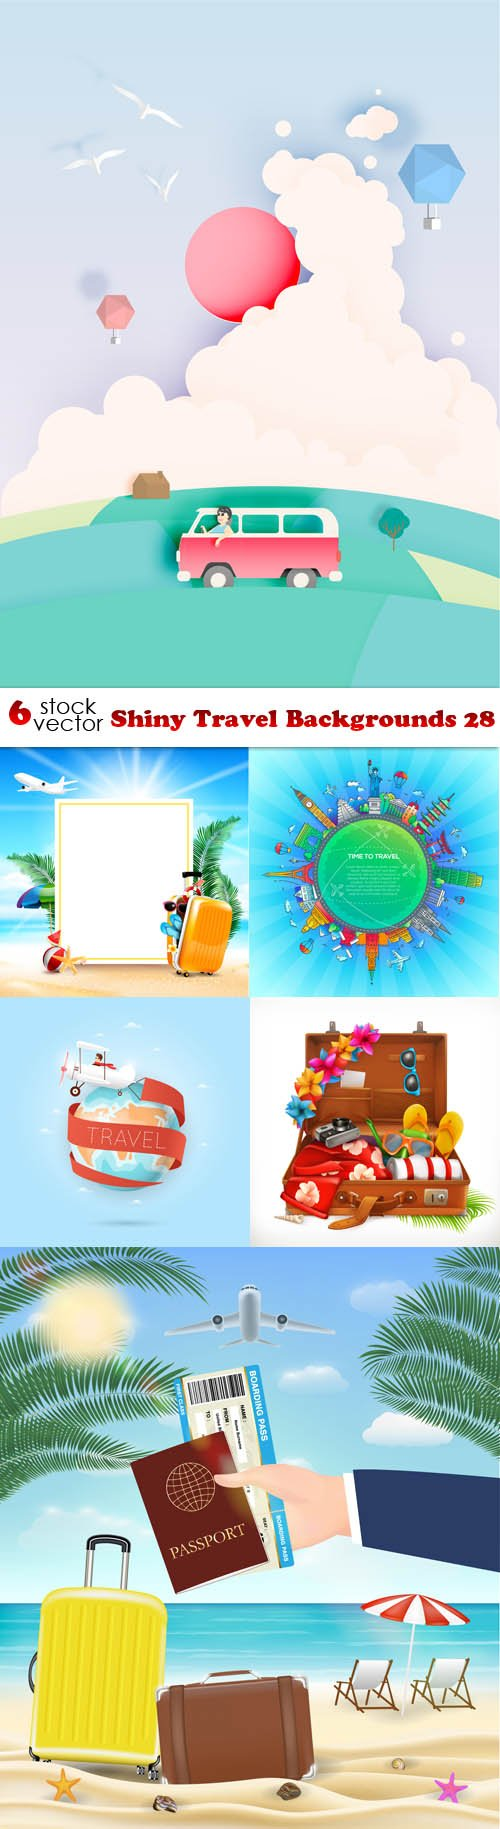 Vectors - Shiny Travel Backgrounds 28